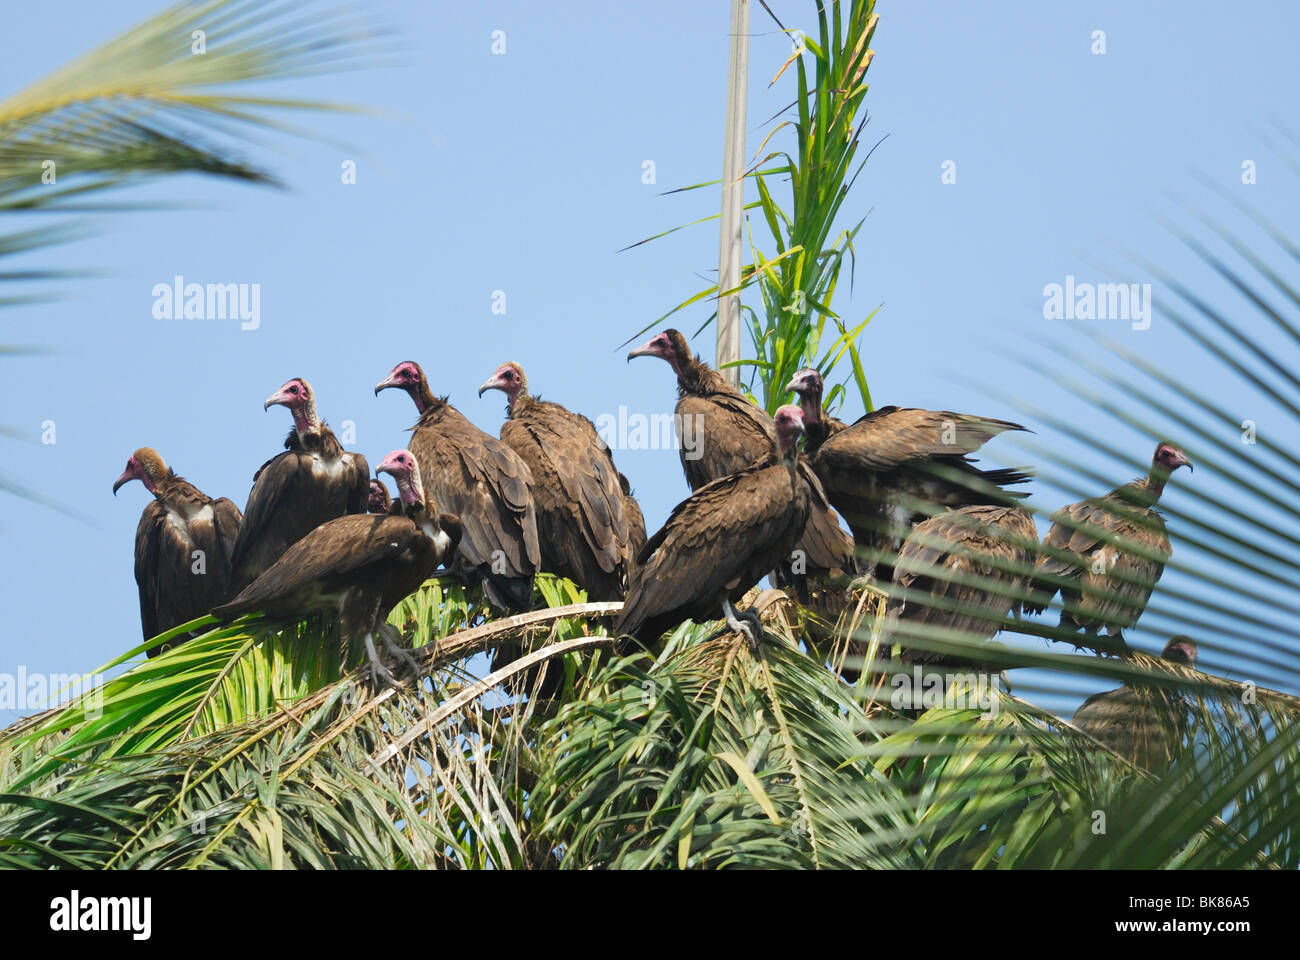 A group of Hooded Vultures (Necrosyrtes monachus ) gathered in a palm tree in The Gambia, Western Africa - Stock Image